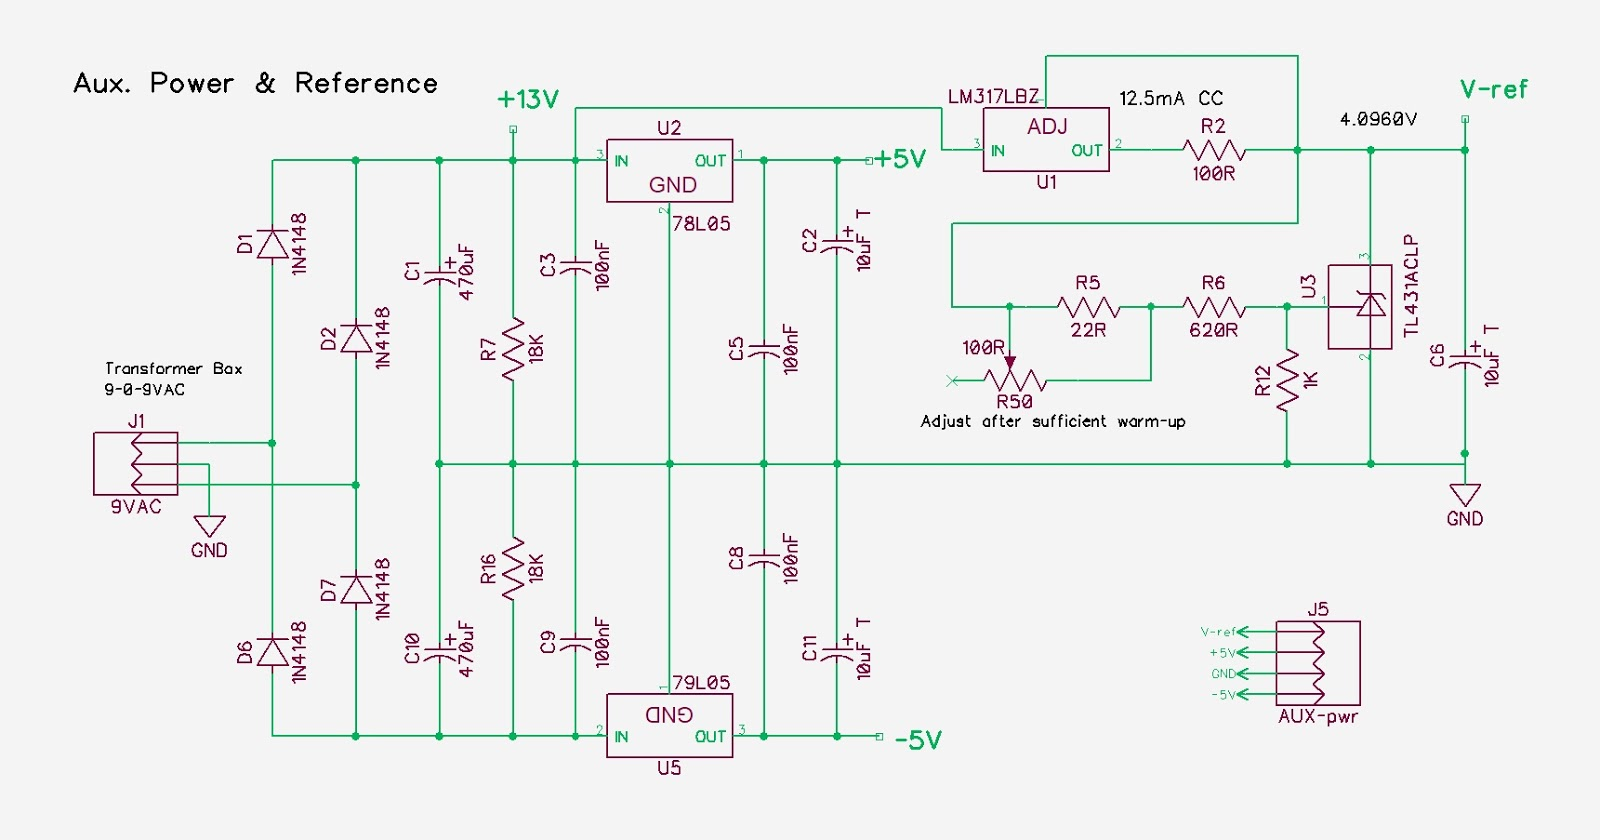 Symmetrical Regulated Power Supply Schematic Circuits Pauls Diy Electronics Blog My New Design Project Part 3 There Is Really Nothing Special About This But Let Me Go Through The I Use A 9 0 9v Ac Transformer Salvaged Out Of Alarm Radio Long Time Ago